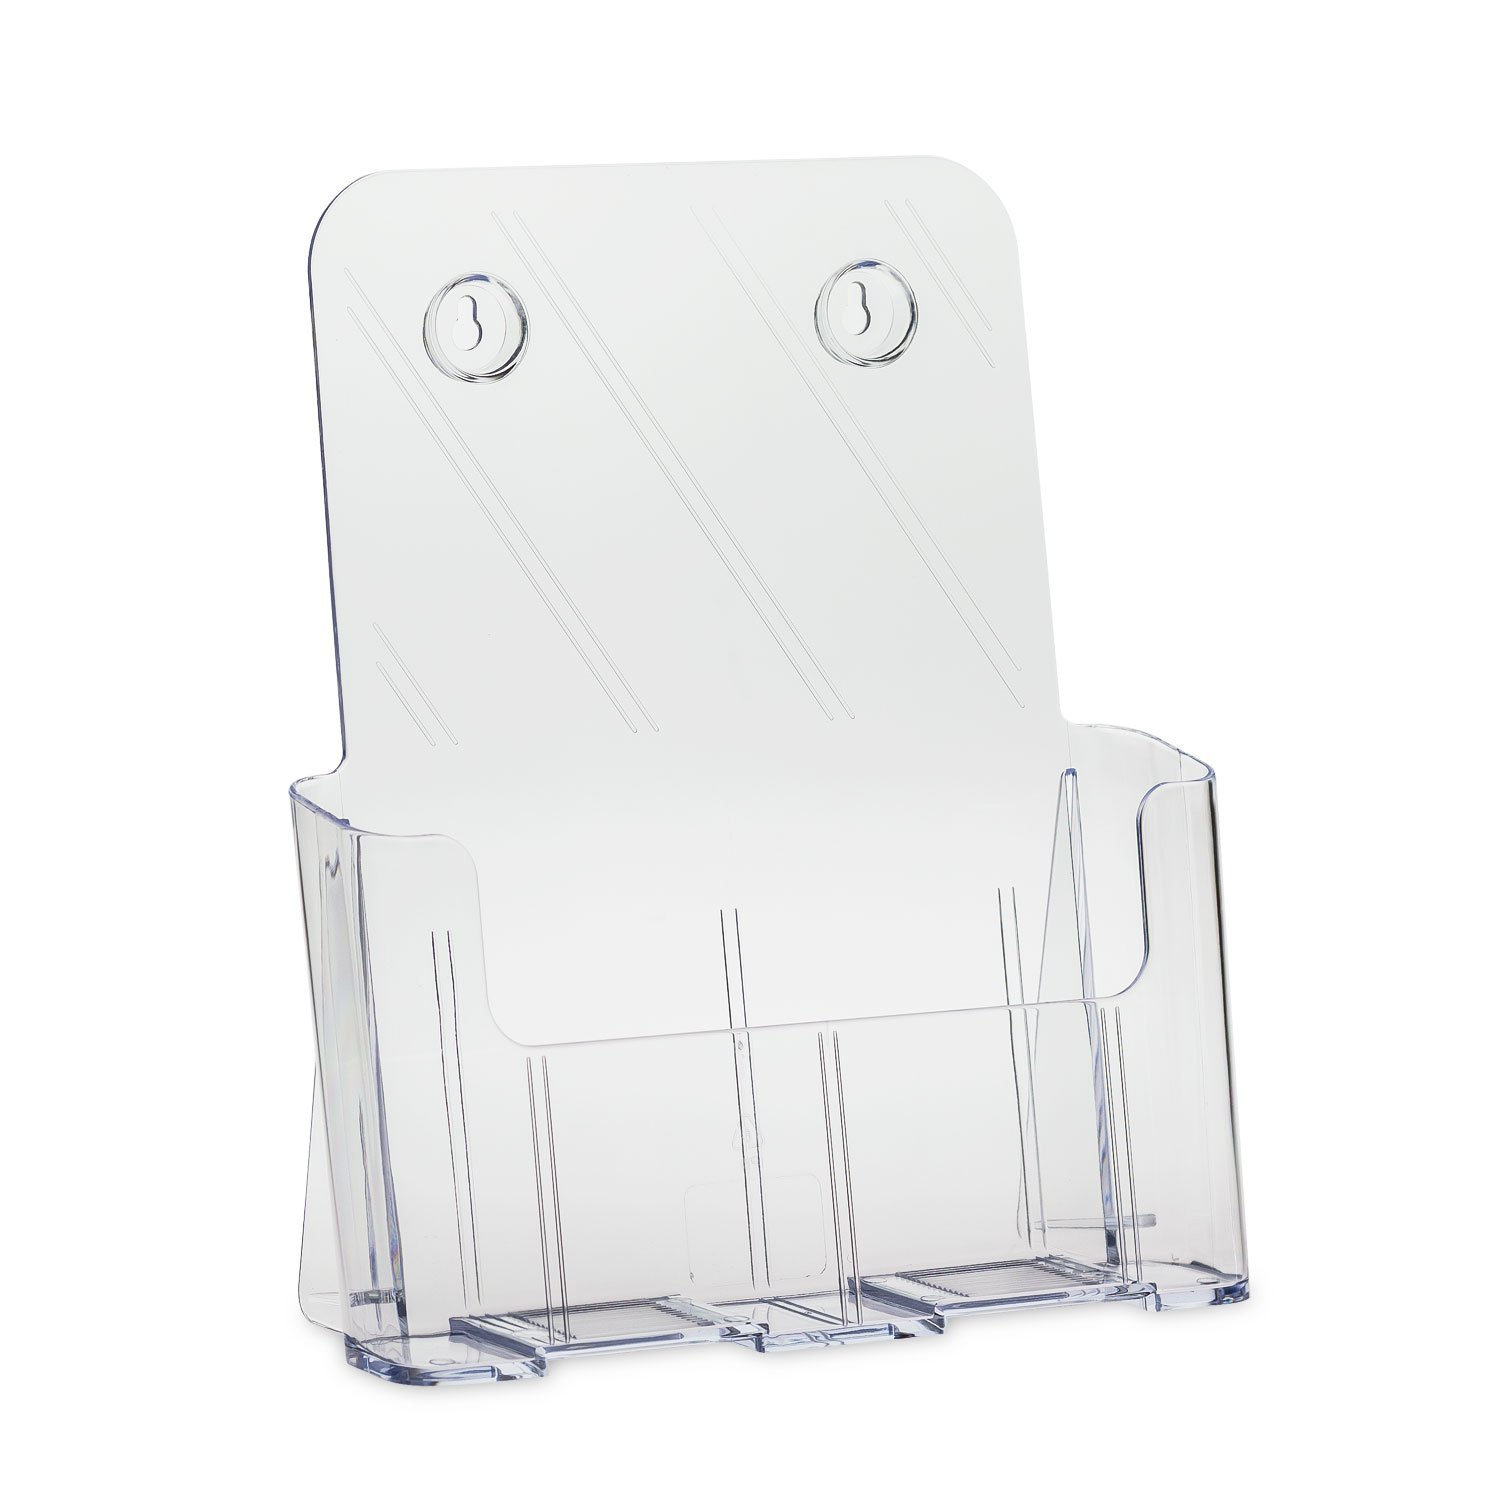 Source One Premium Universal 8.5 X 11 Inches Brochure Holder Magazine Rack, Large (LG-BRO) by SourceOne